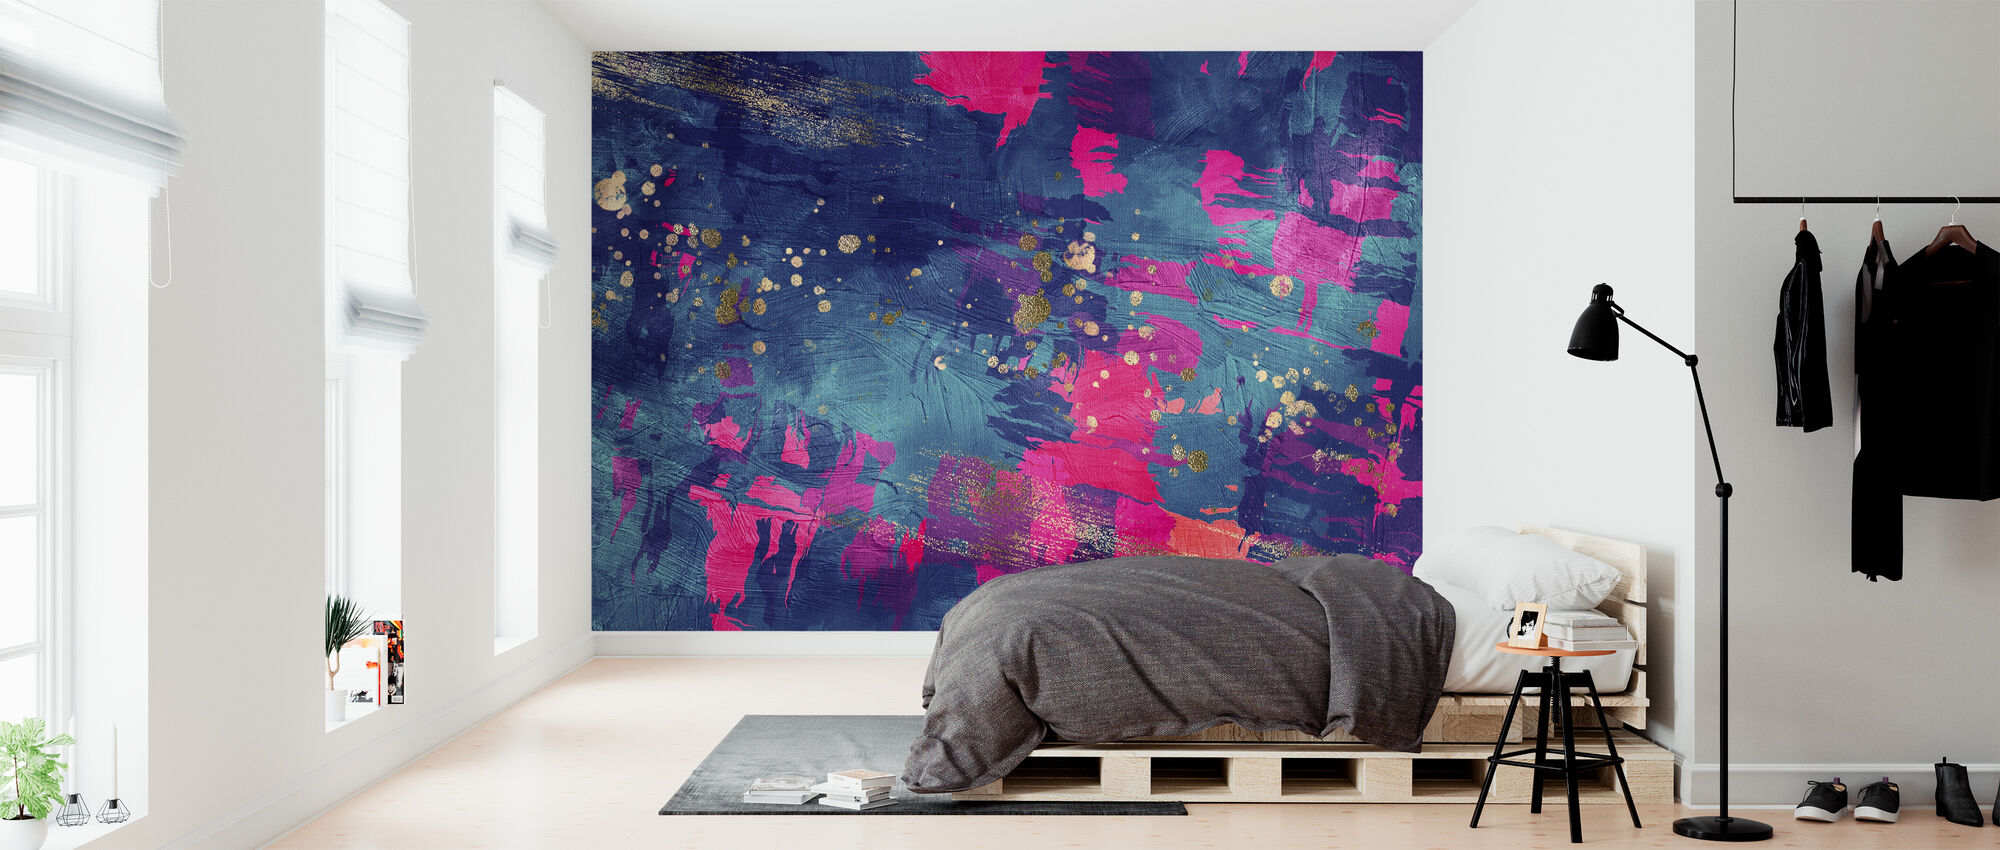 Abstract Oil Painting - Wallpaper - Bedroom